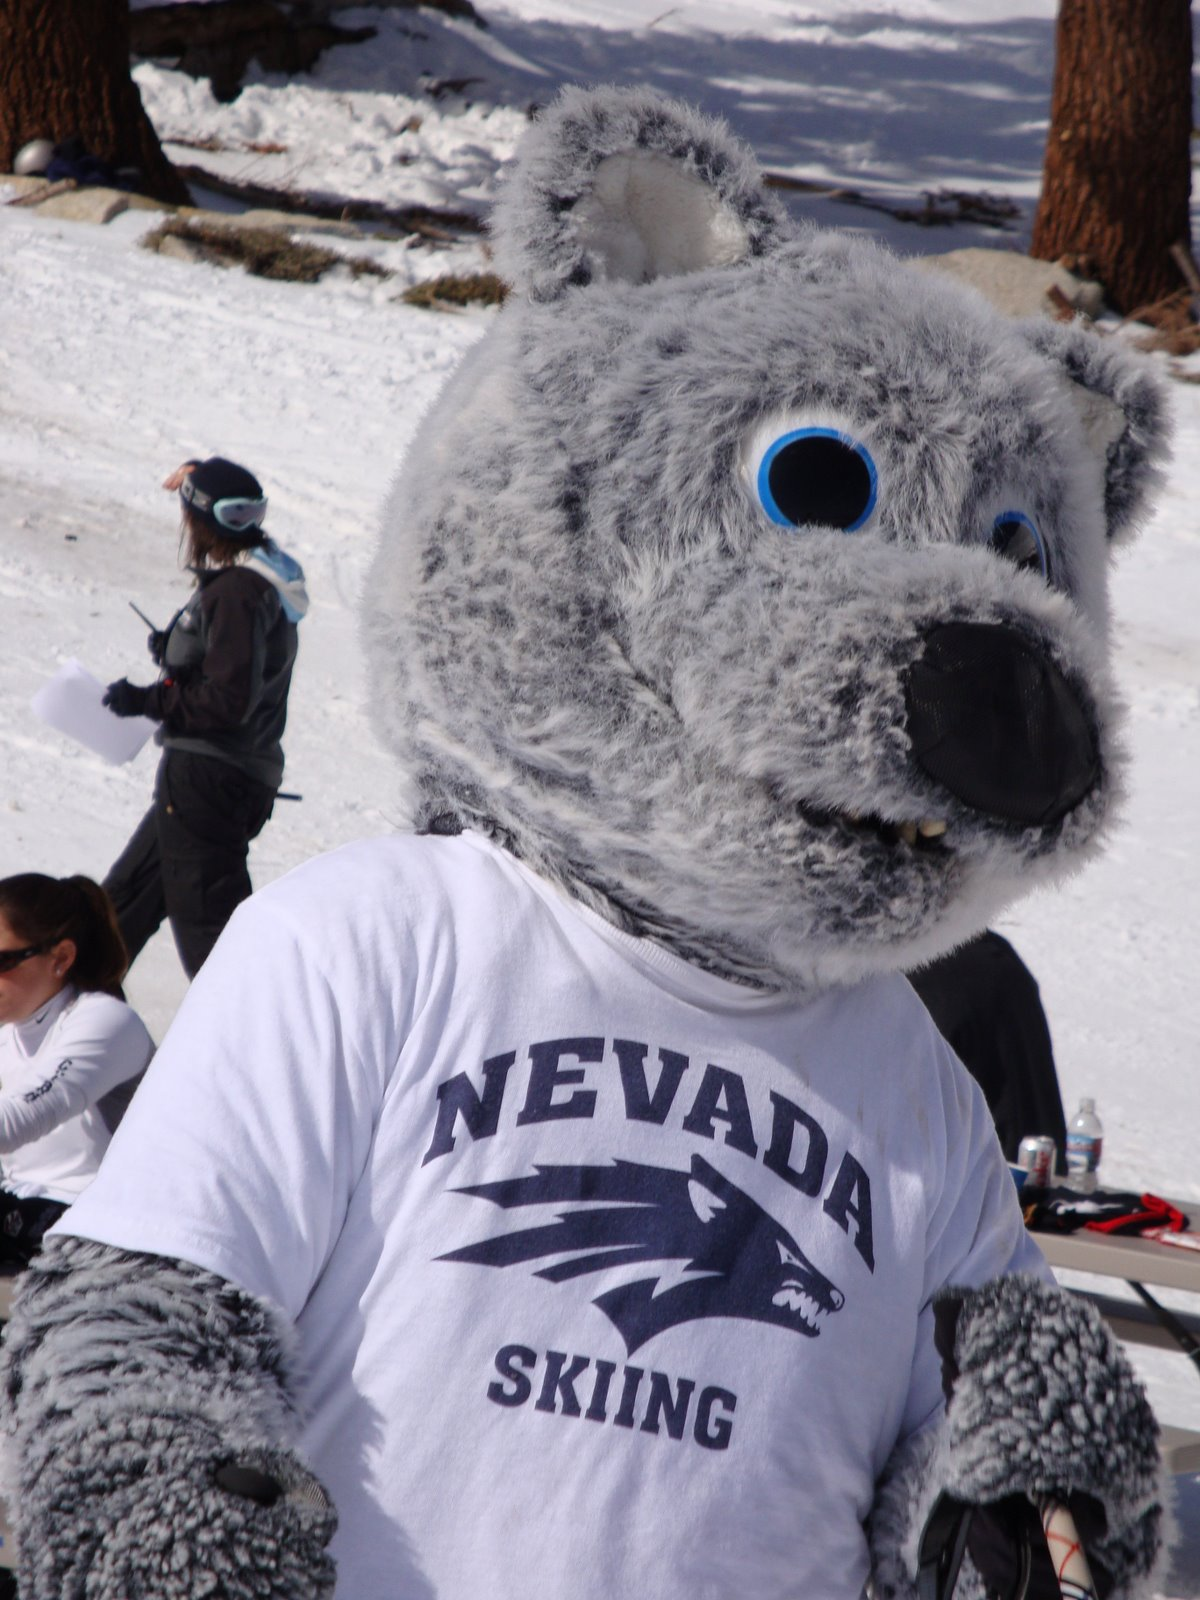 Nevada Alpine Ski team